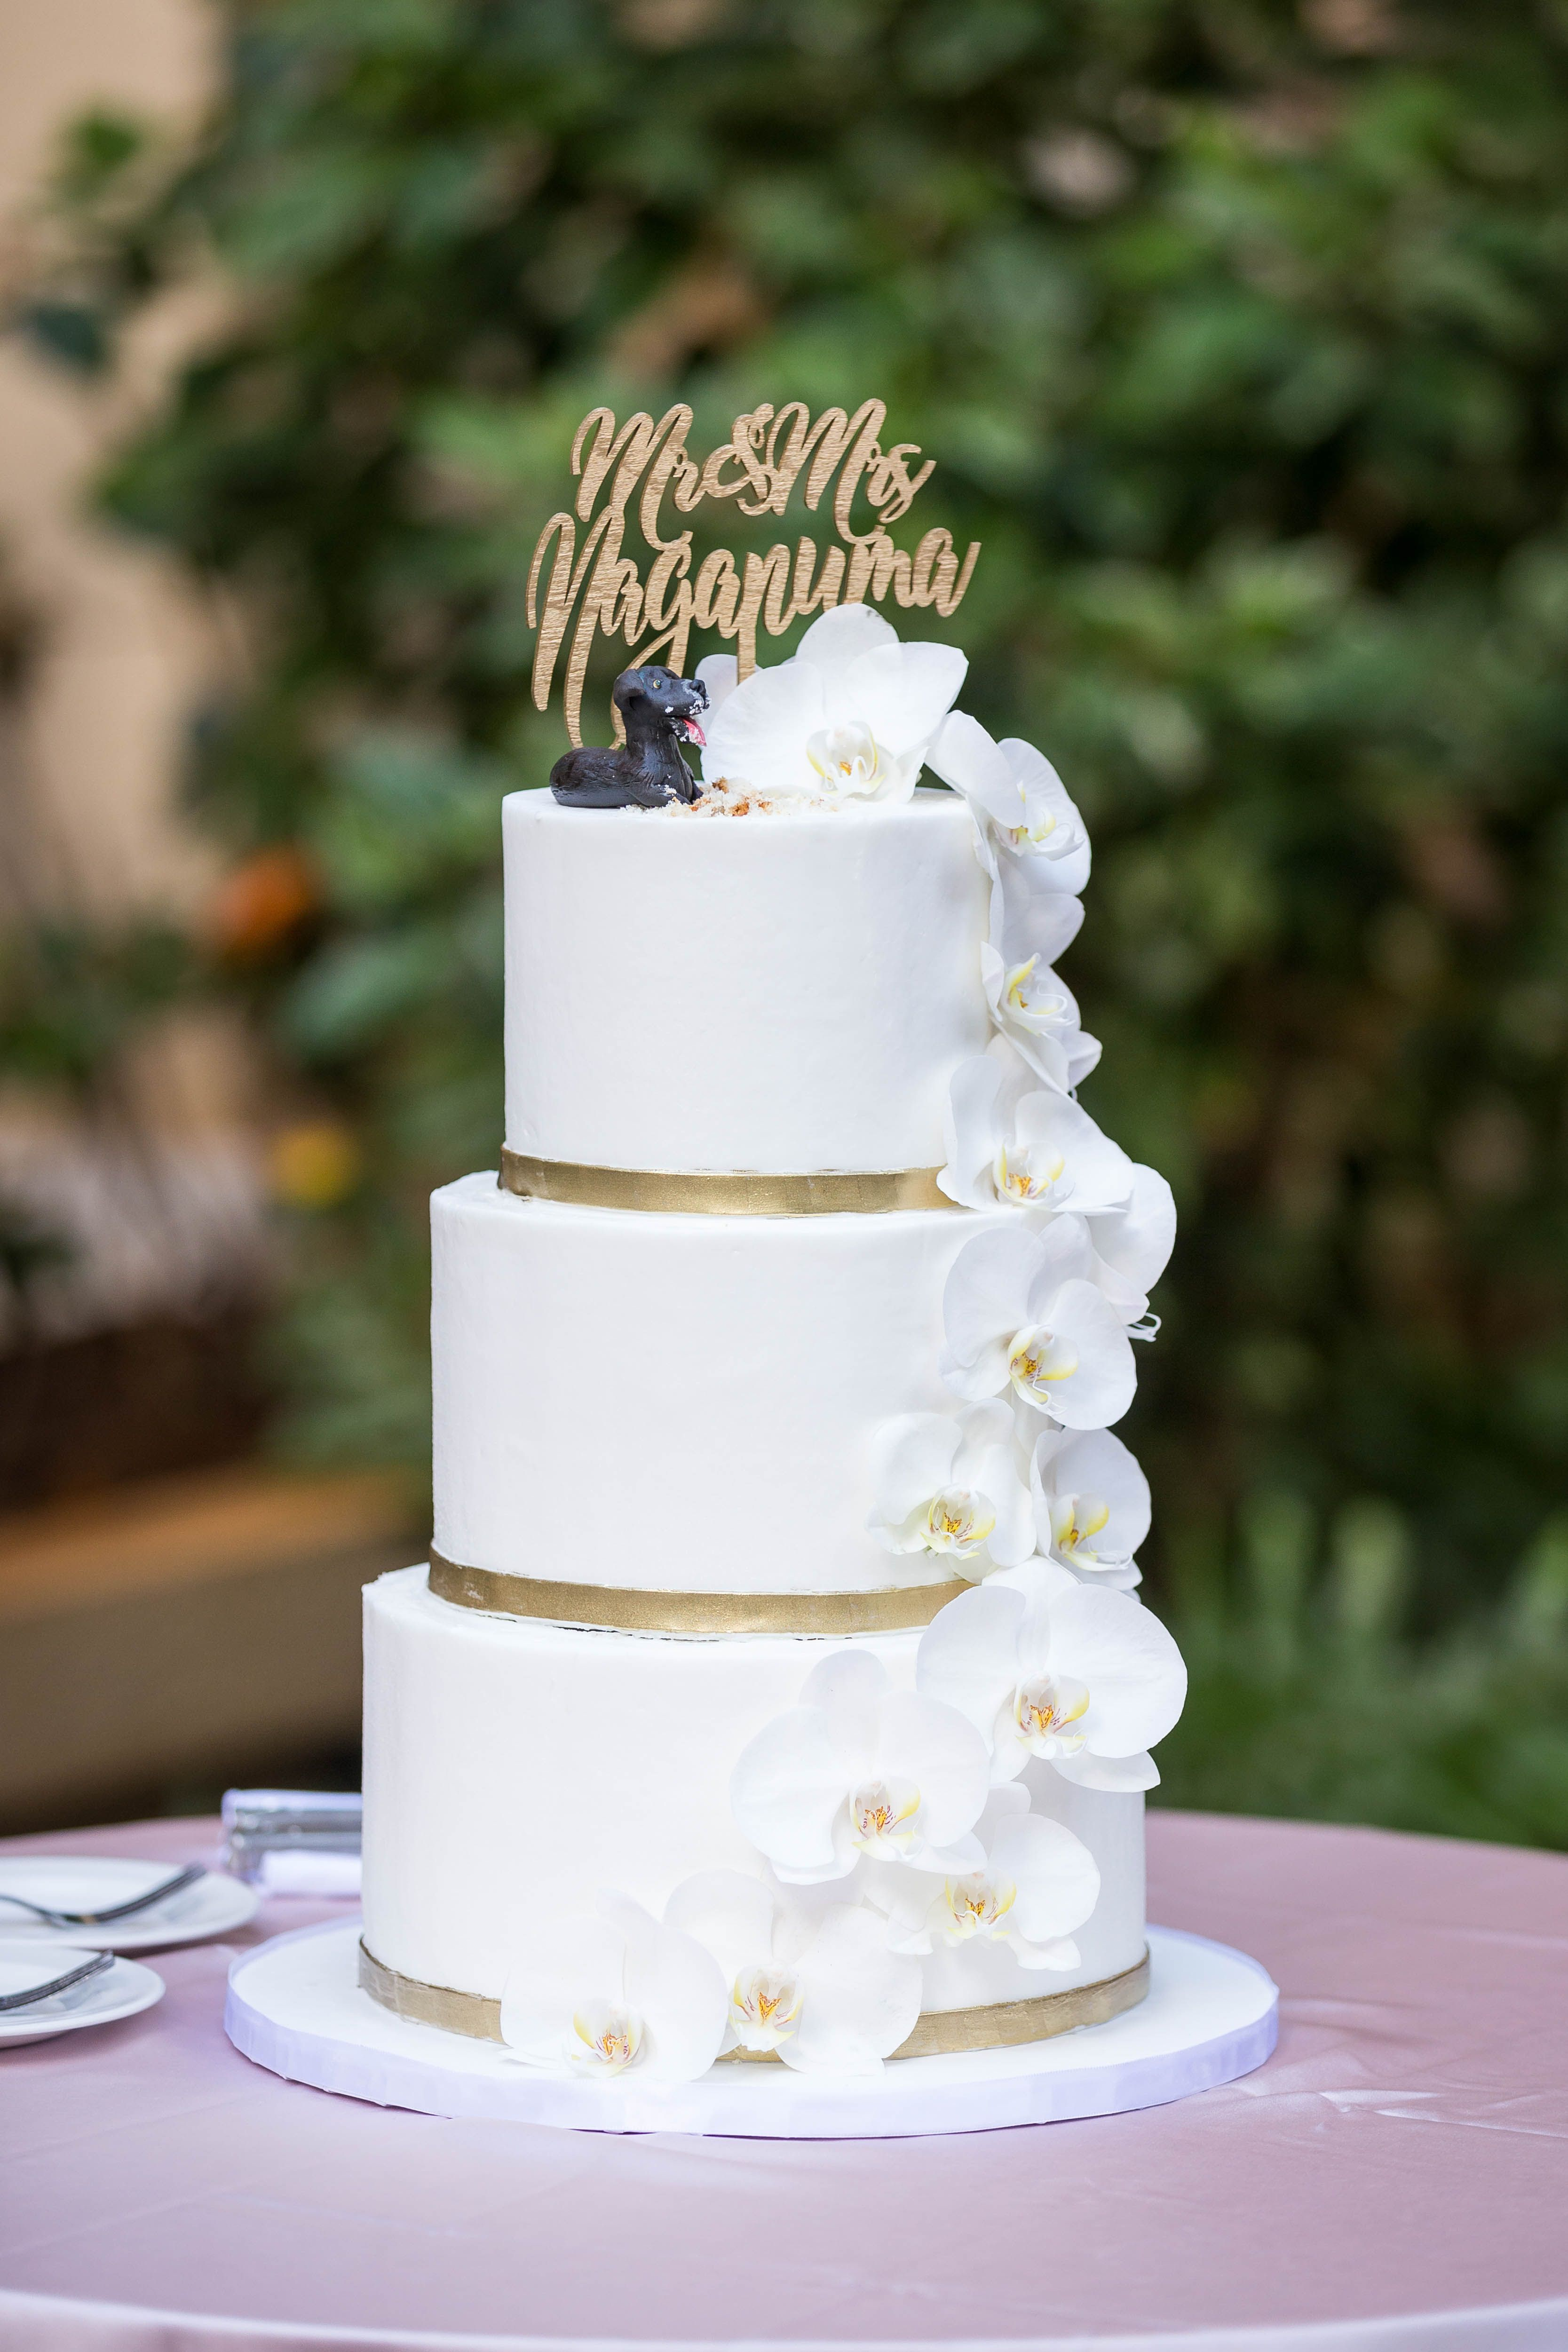 Elegant And Simple White Wedding Cake With Gold Bands And Orchids